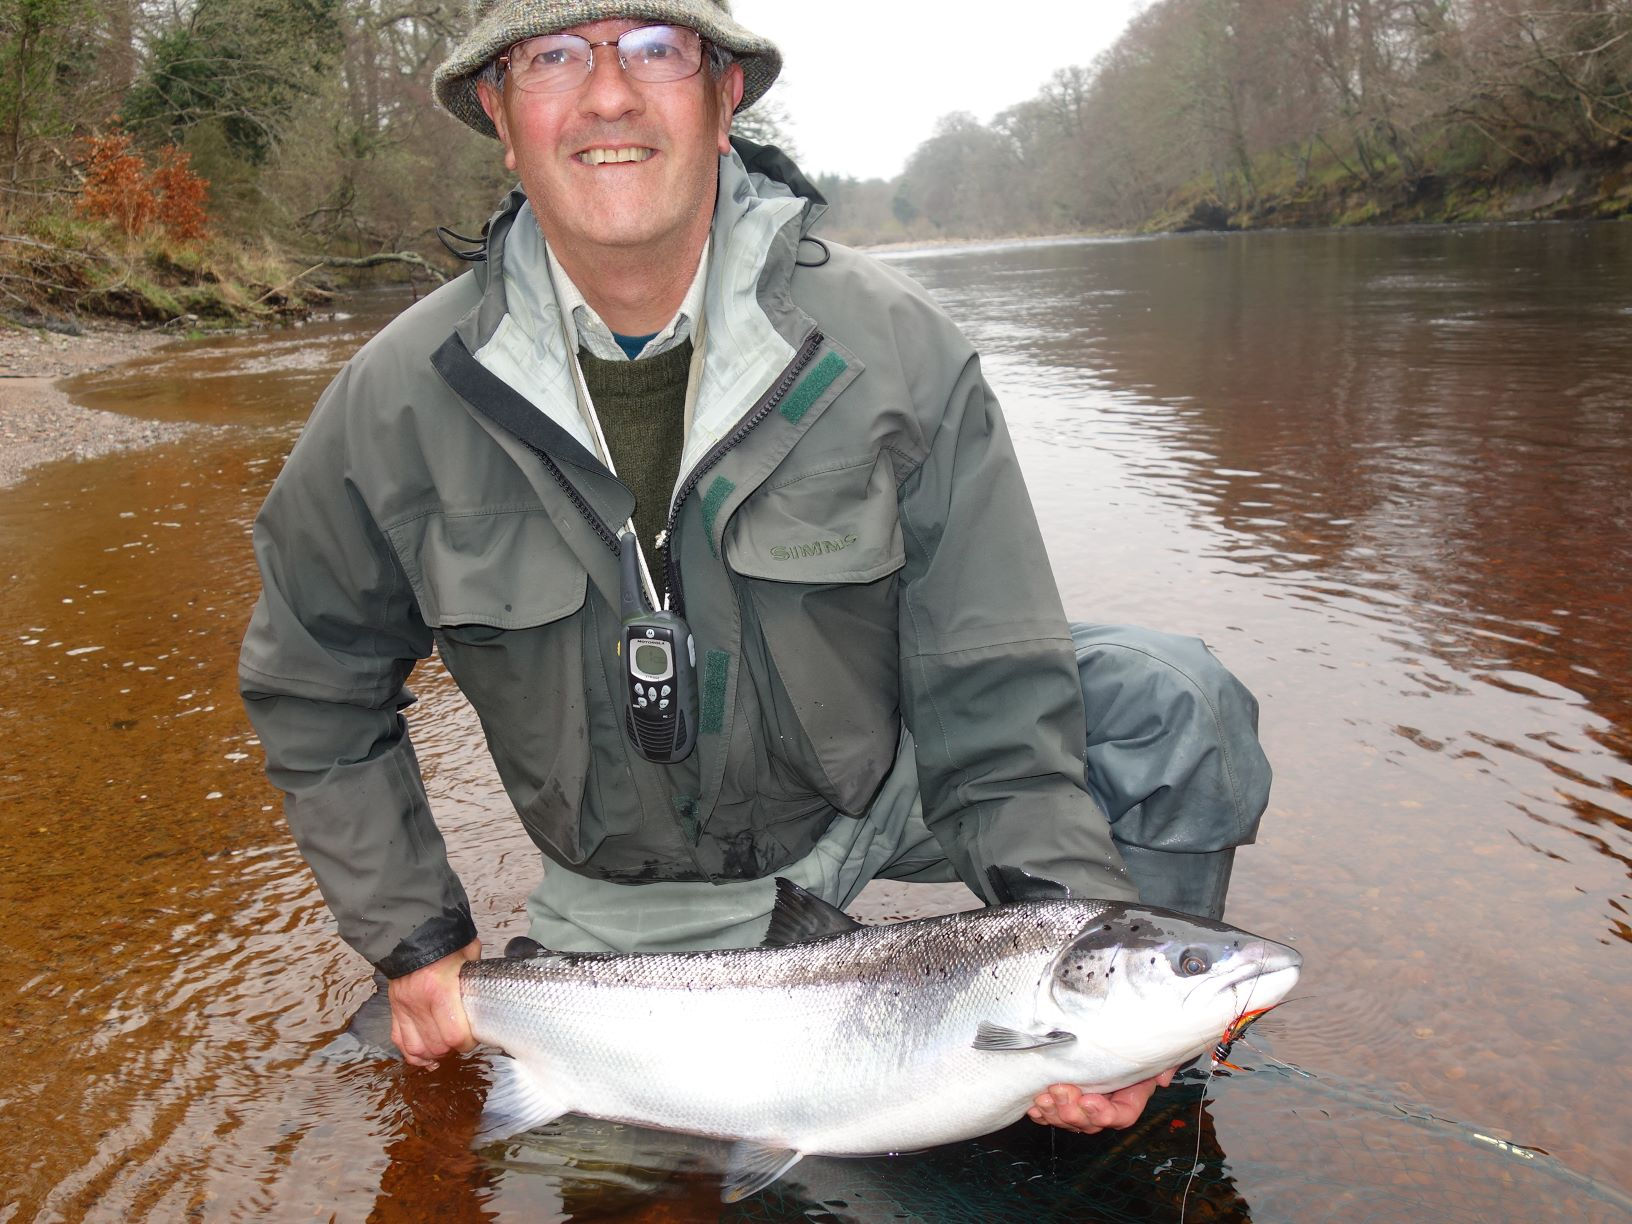 David Clark, 20 lbs, Scur Pool on Meads of St. John at Darnaway, River Findhorn